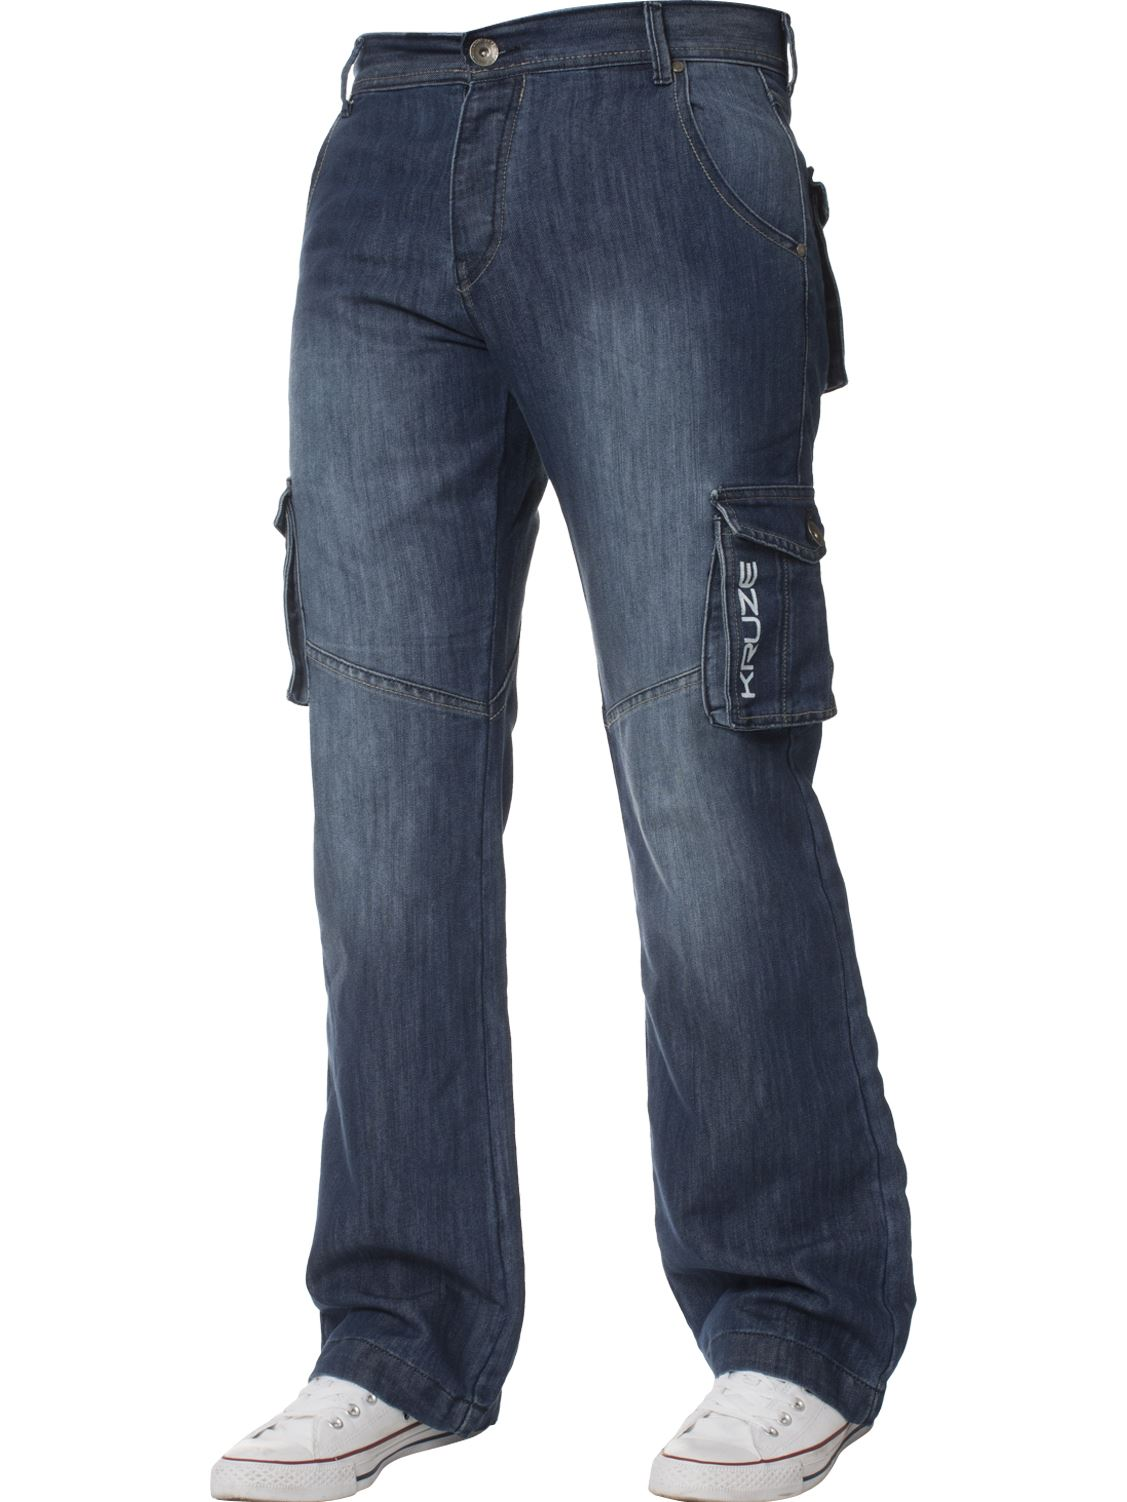 Mens-Cargo-Jeans-Combat-Trousers-Heavy-Duty-Work-Casual-Big-Tall-Denim-Pants thumbnail 61